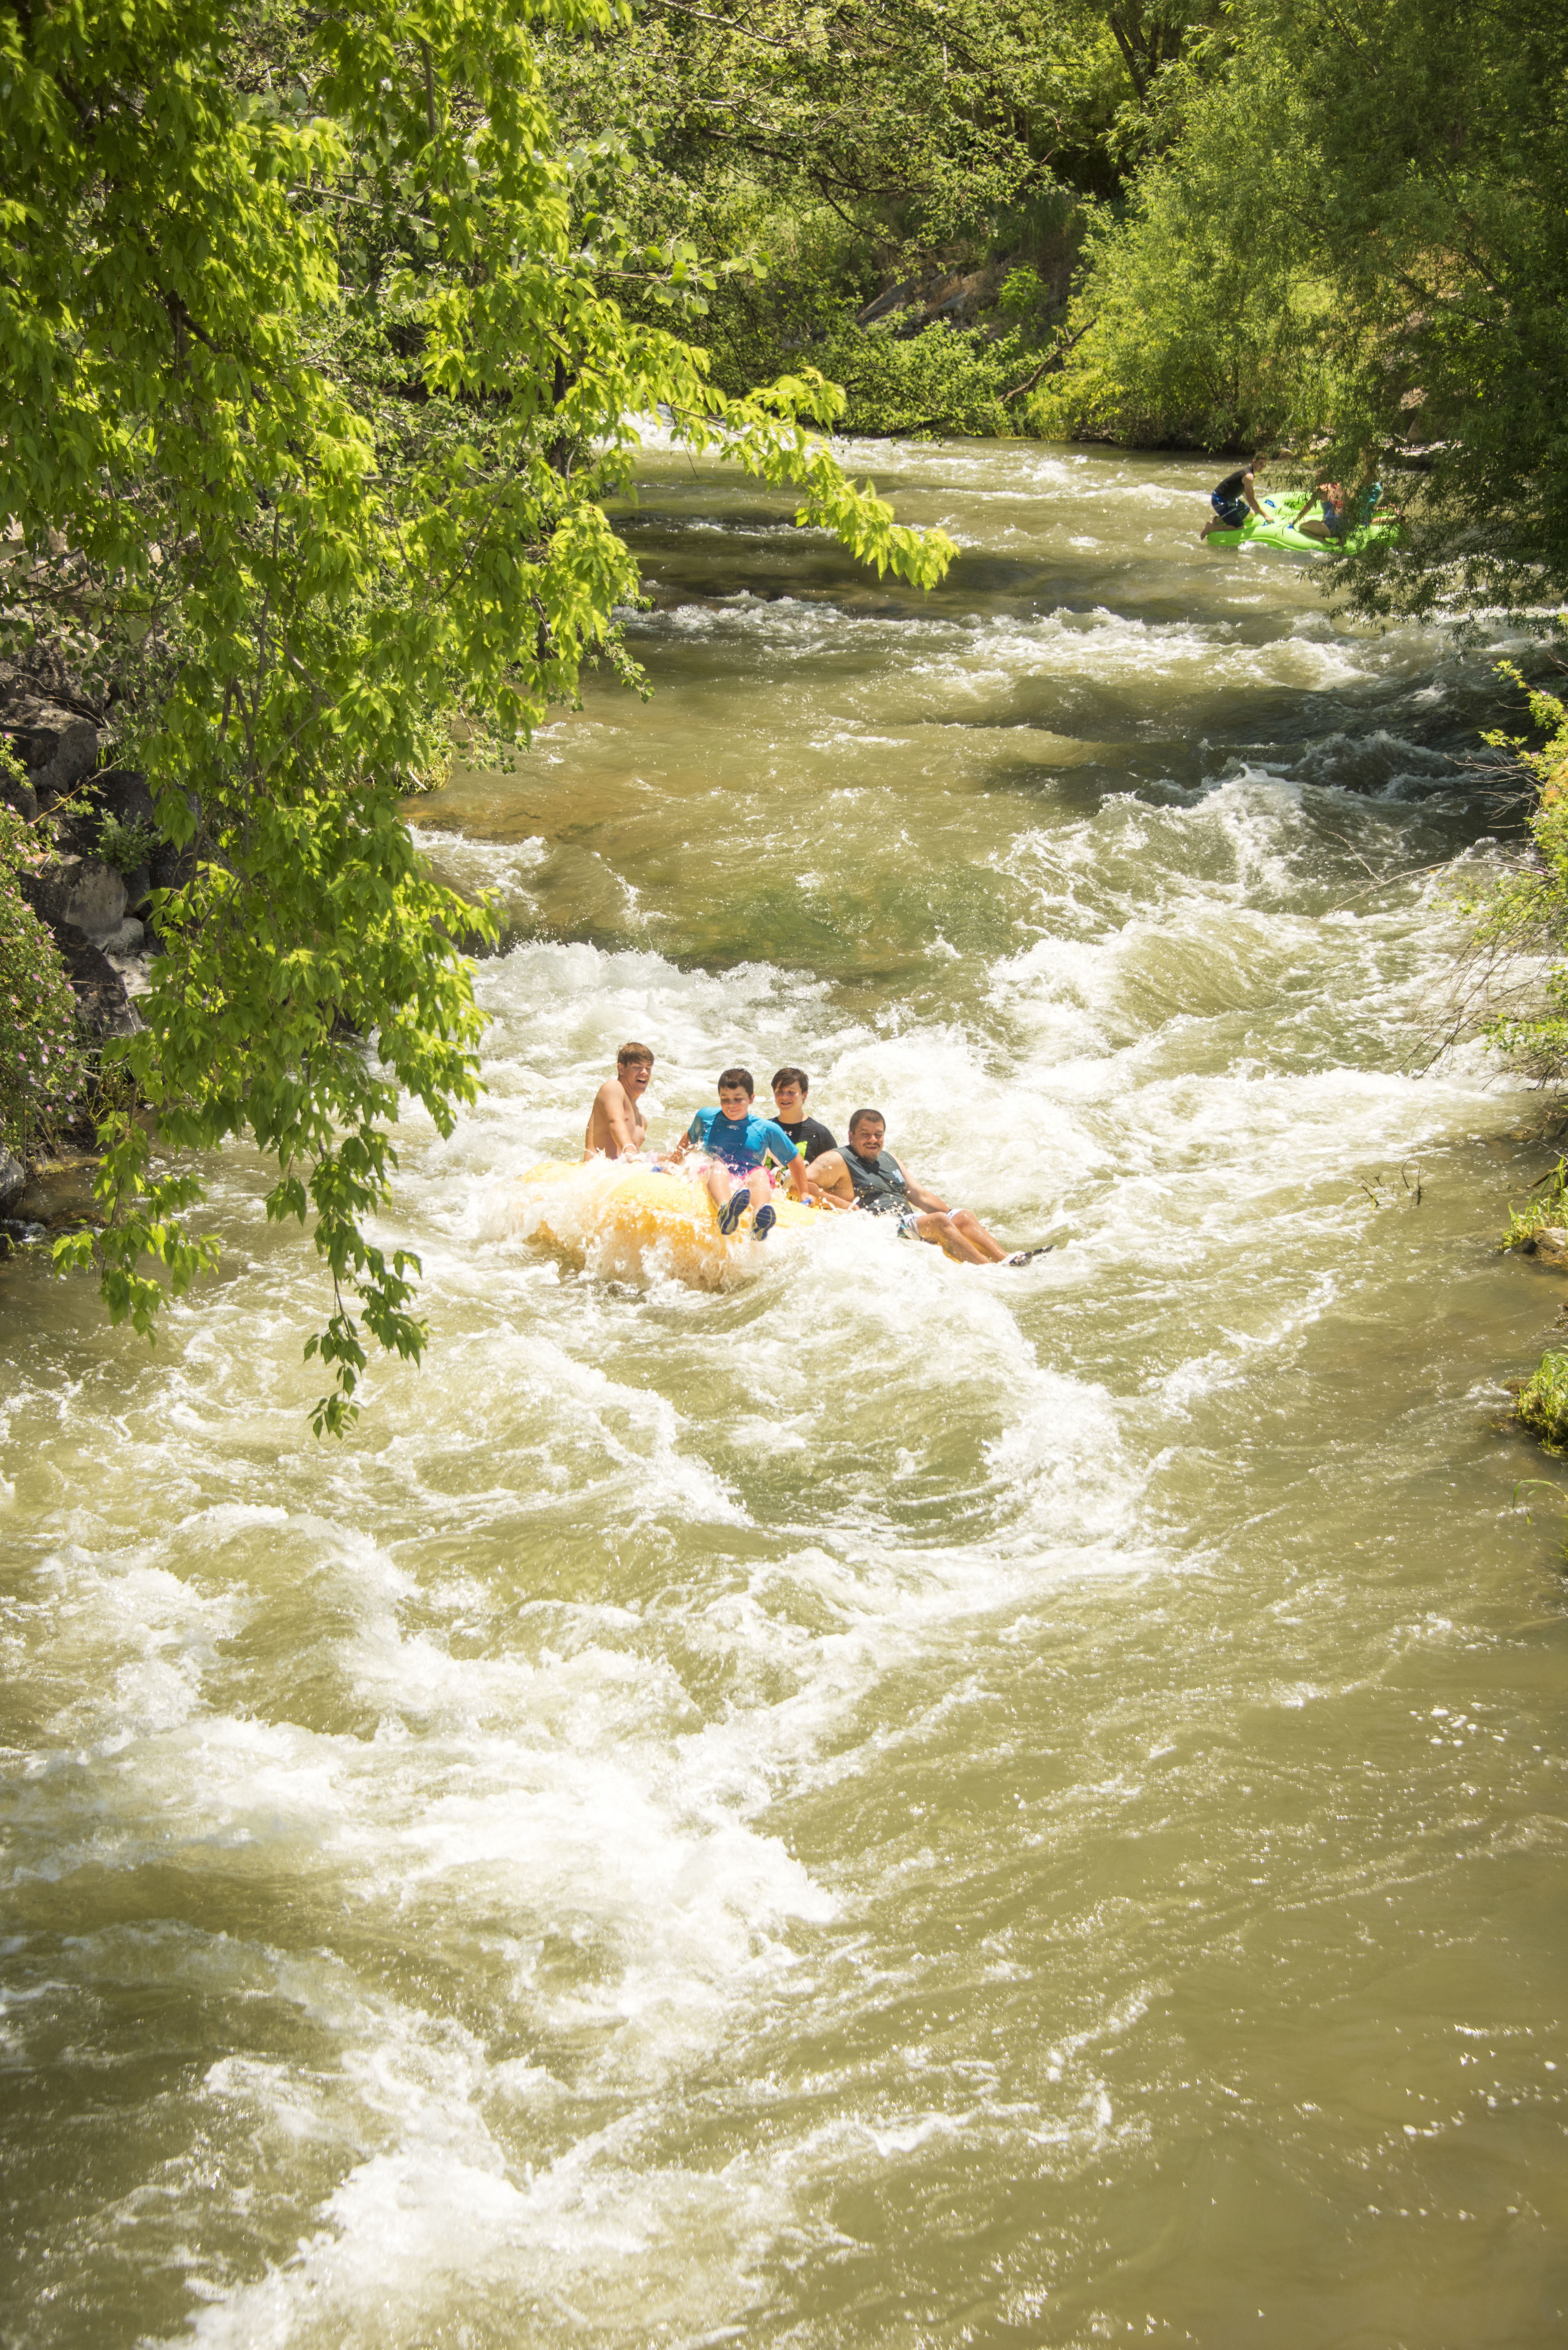 Tubing on the Portneuf River in the summer.